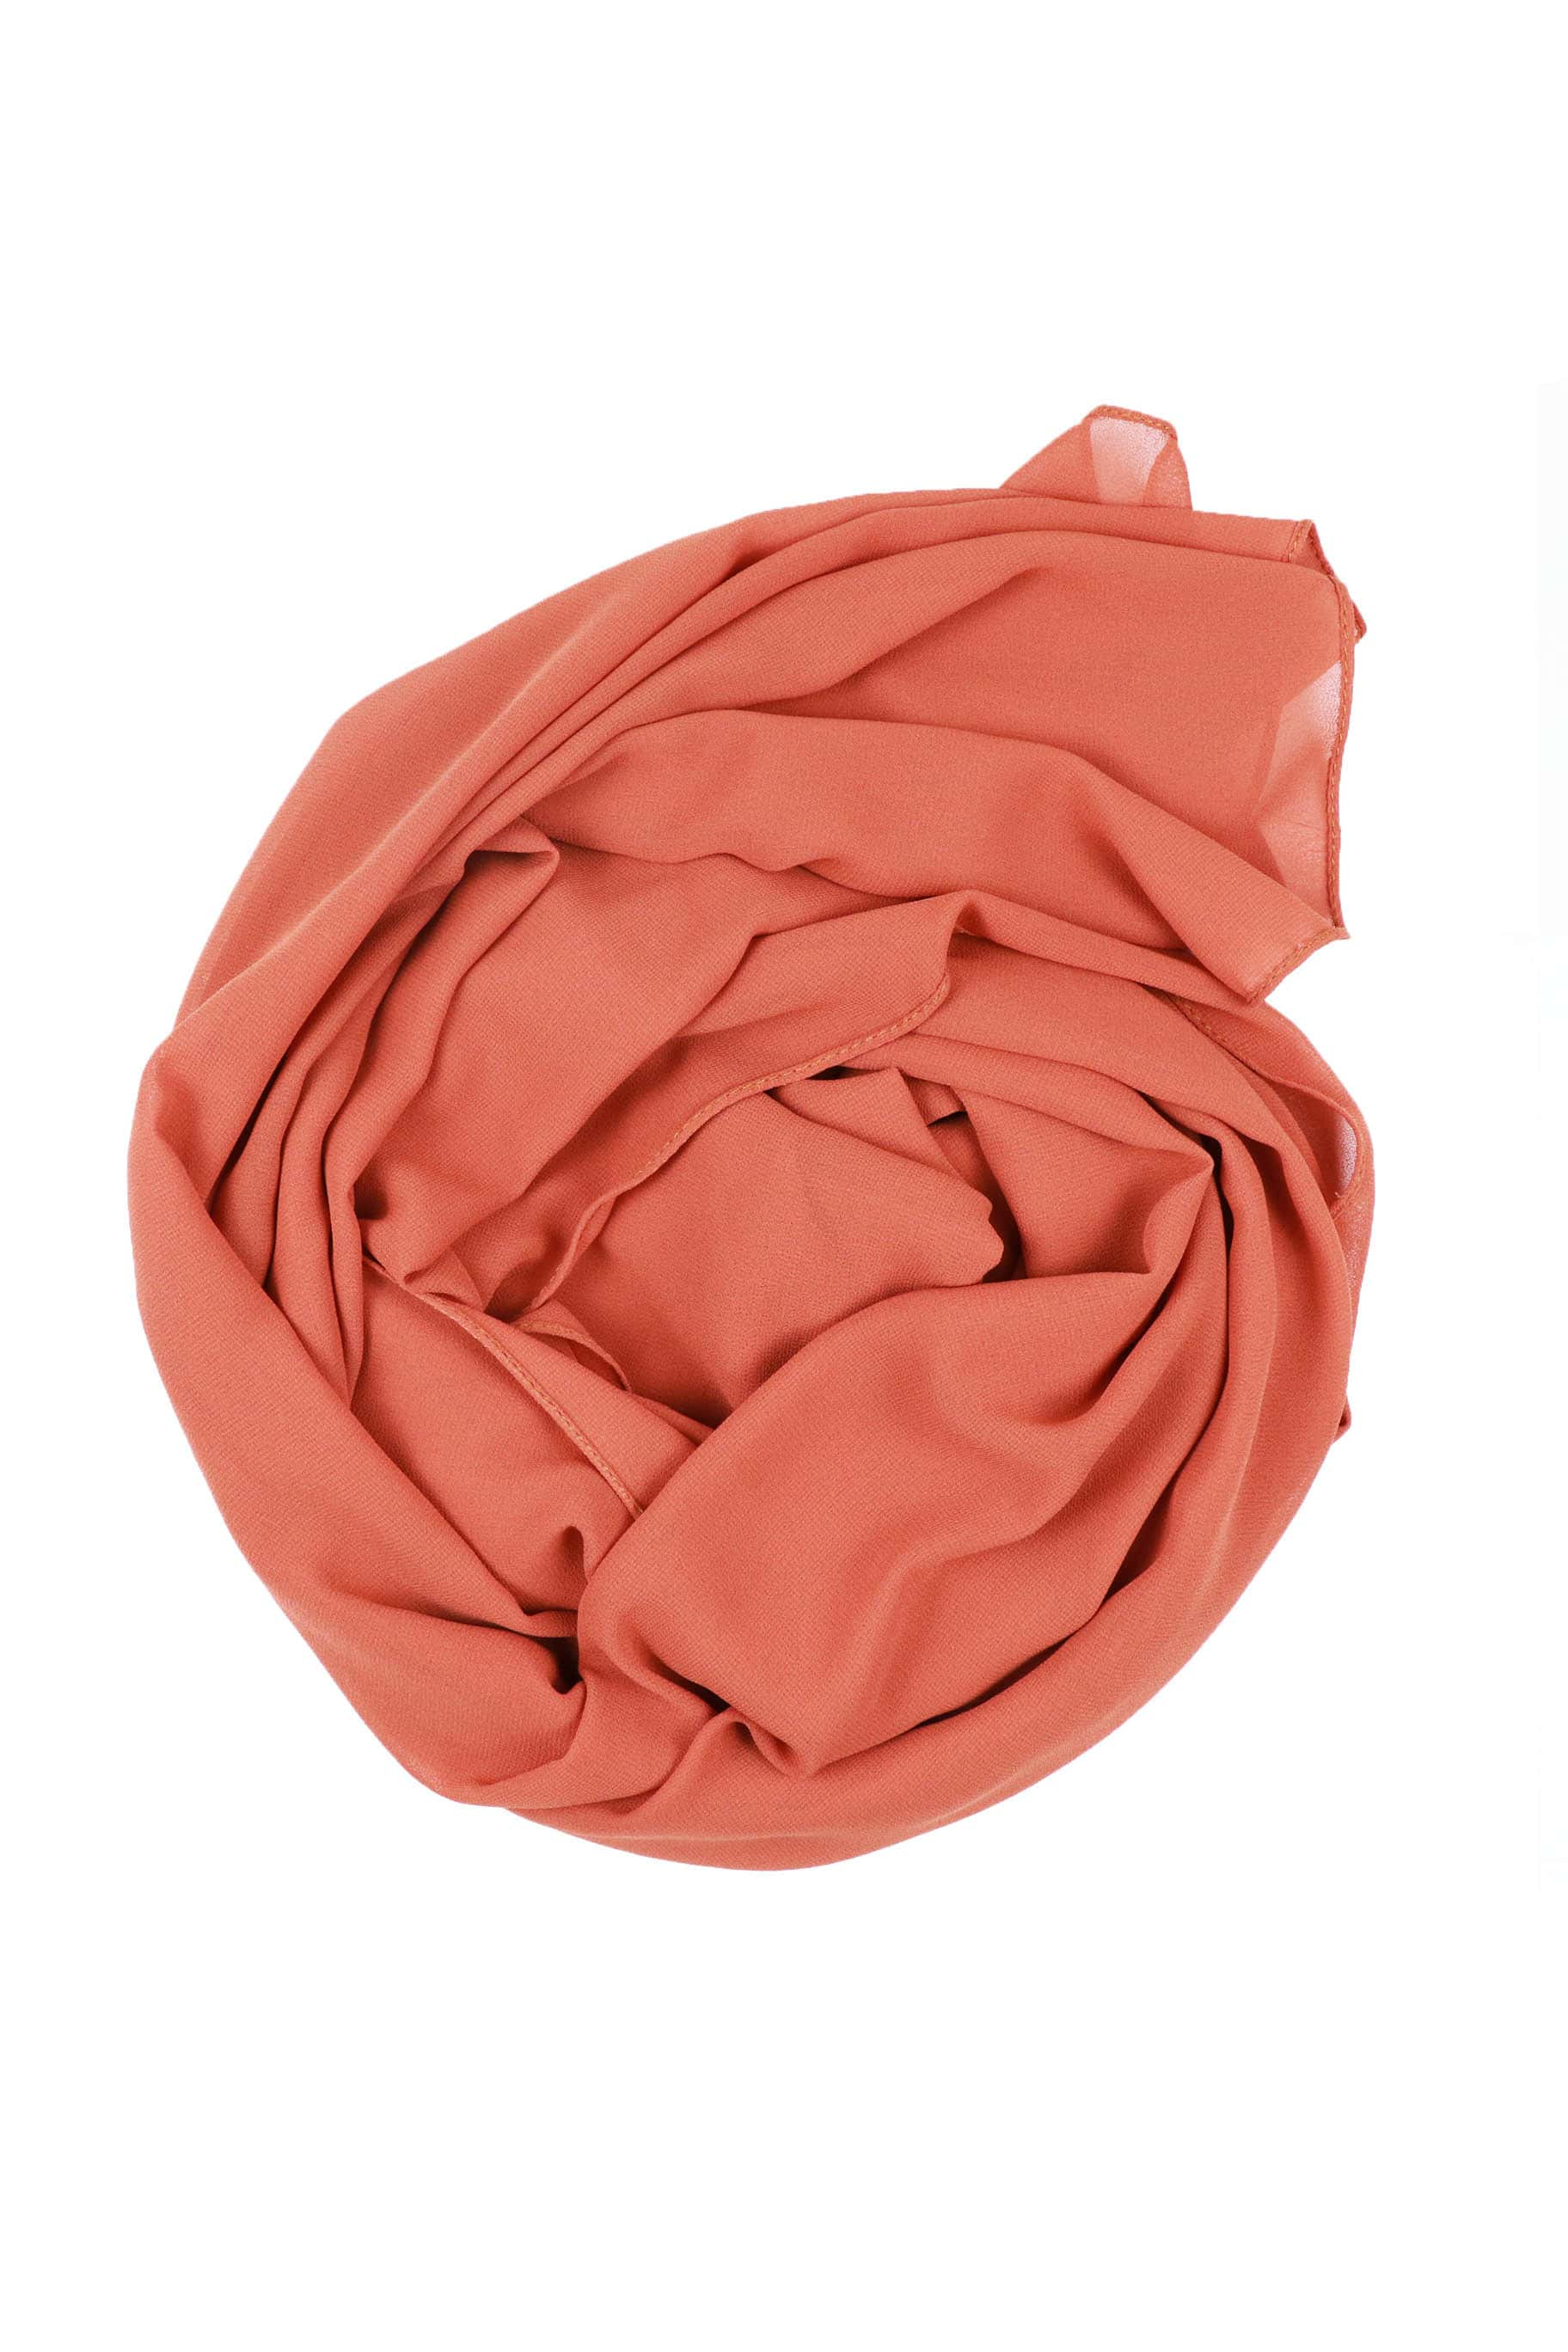 Coral Chiffon Hijab - The Modest Look